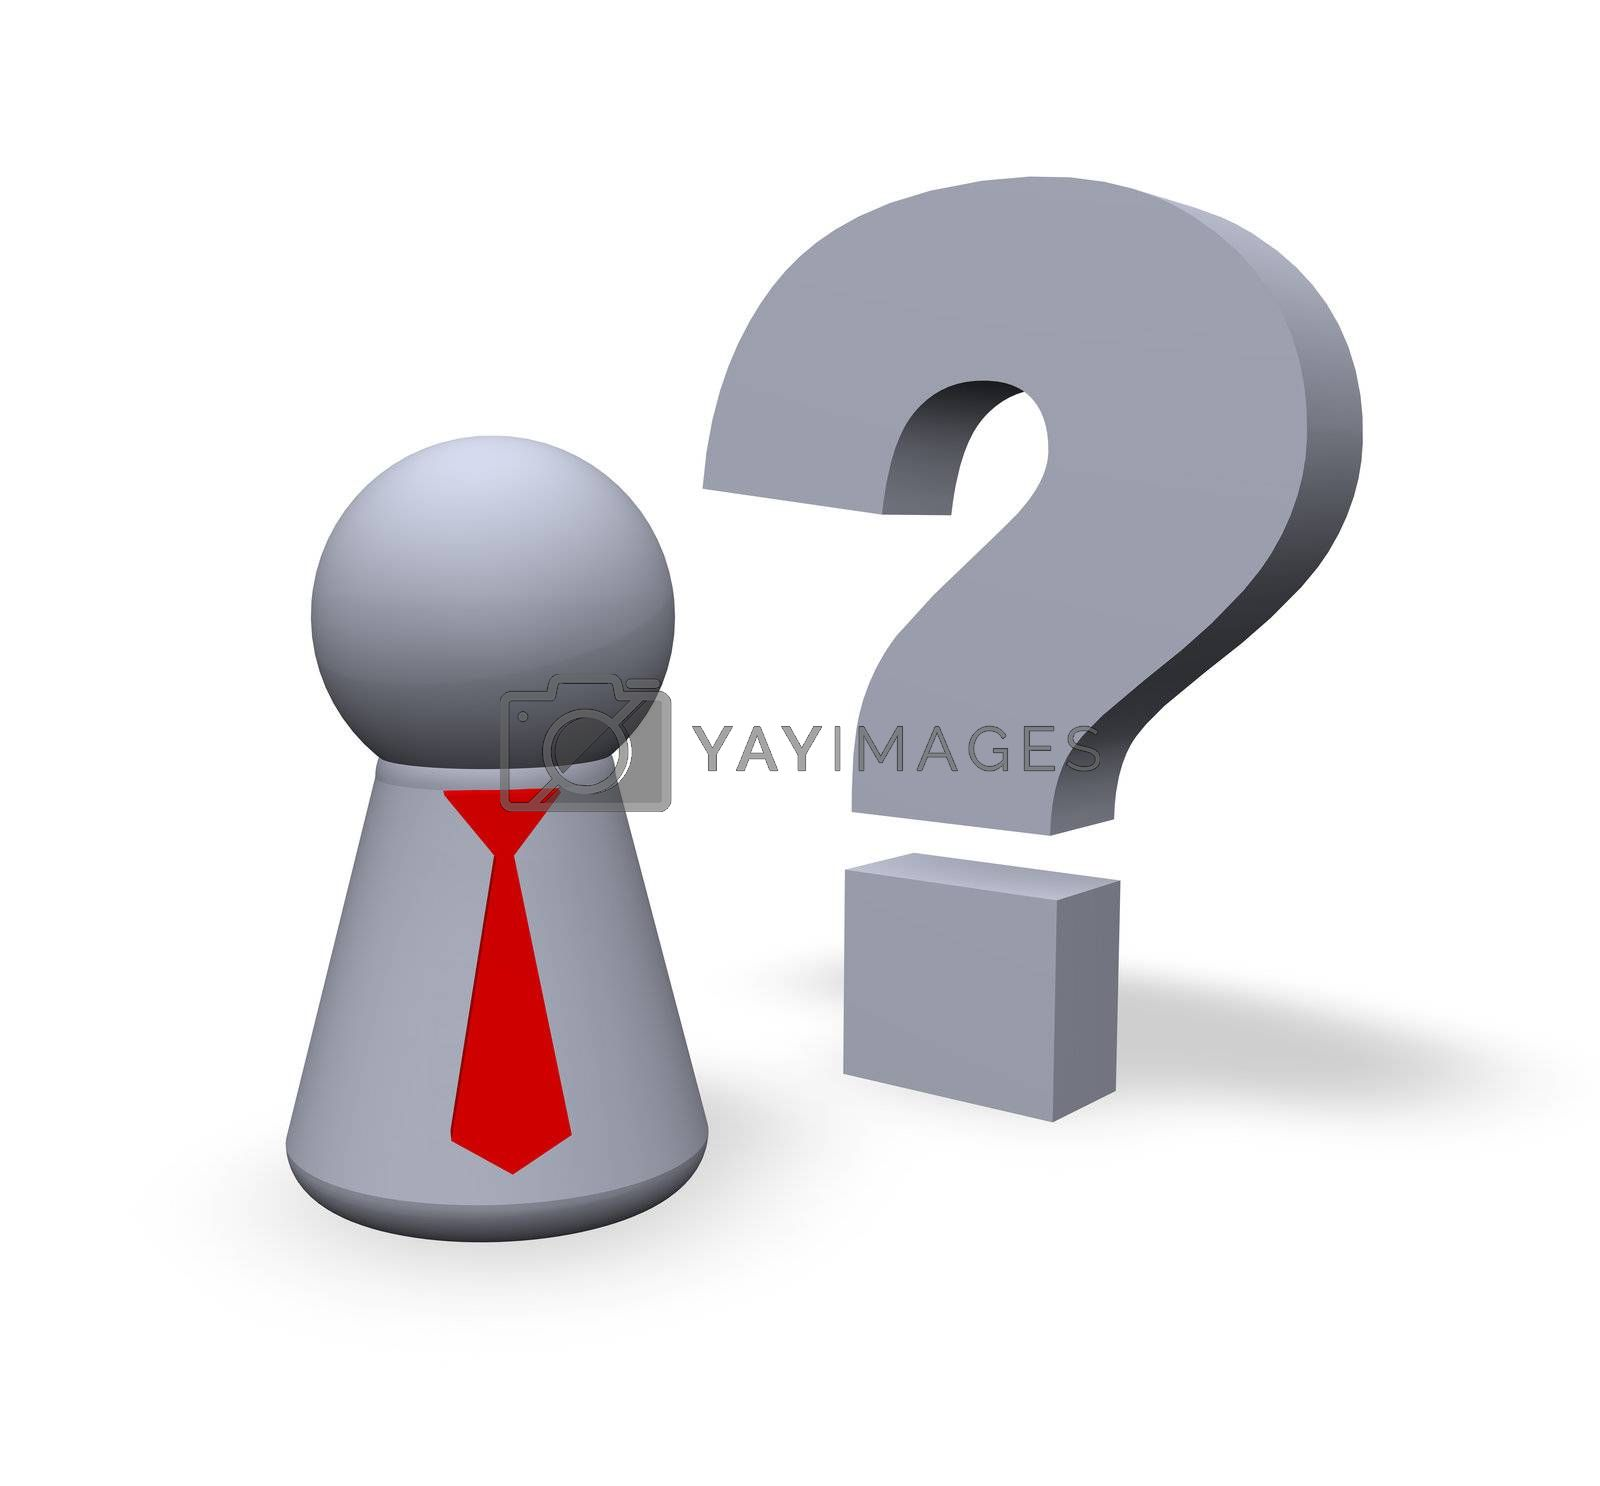 play figure with red tie and question mark in 3d